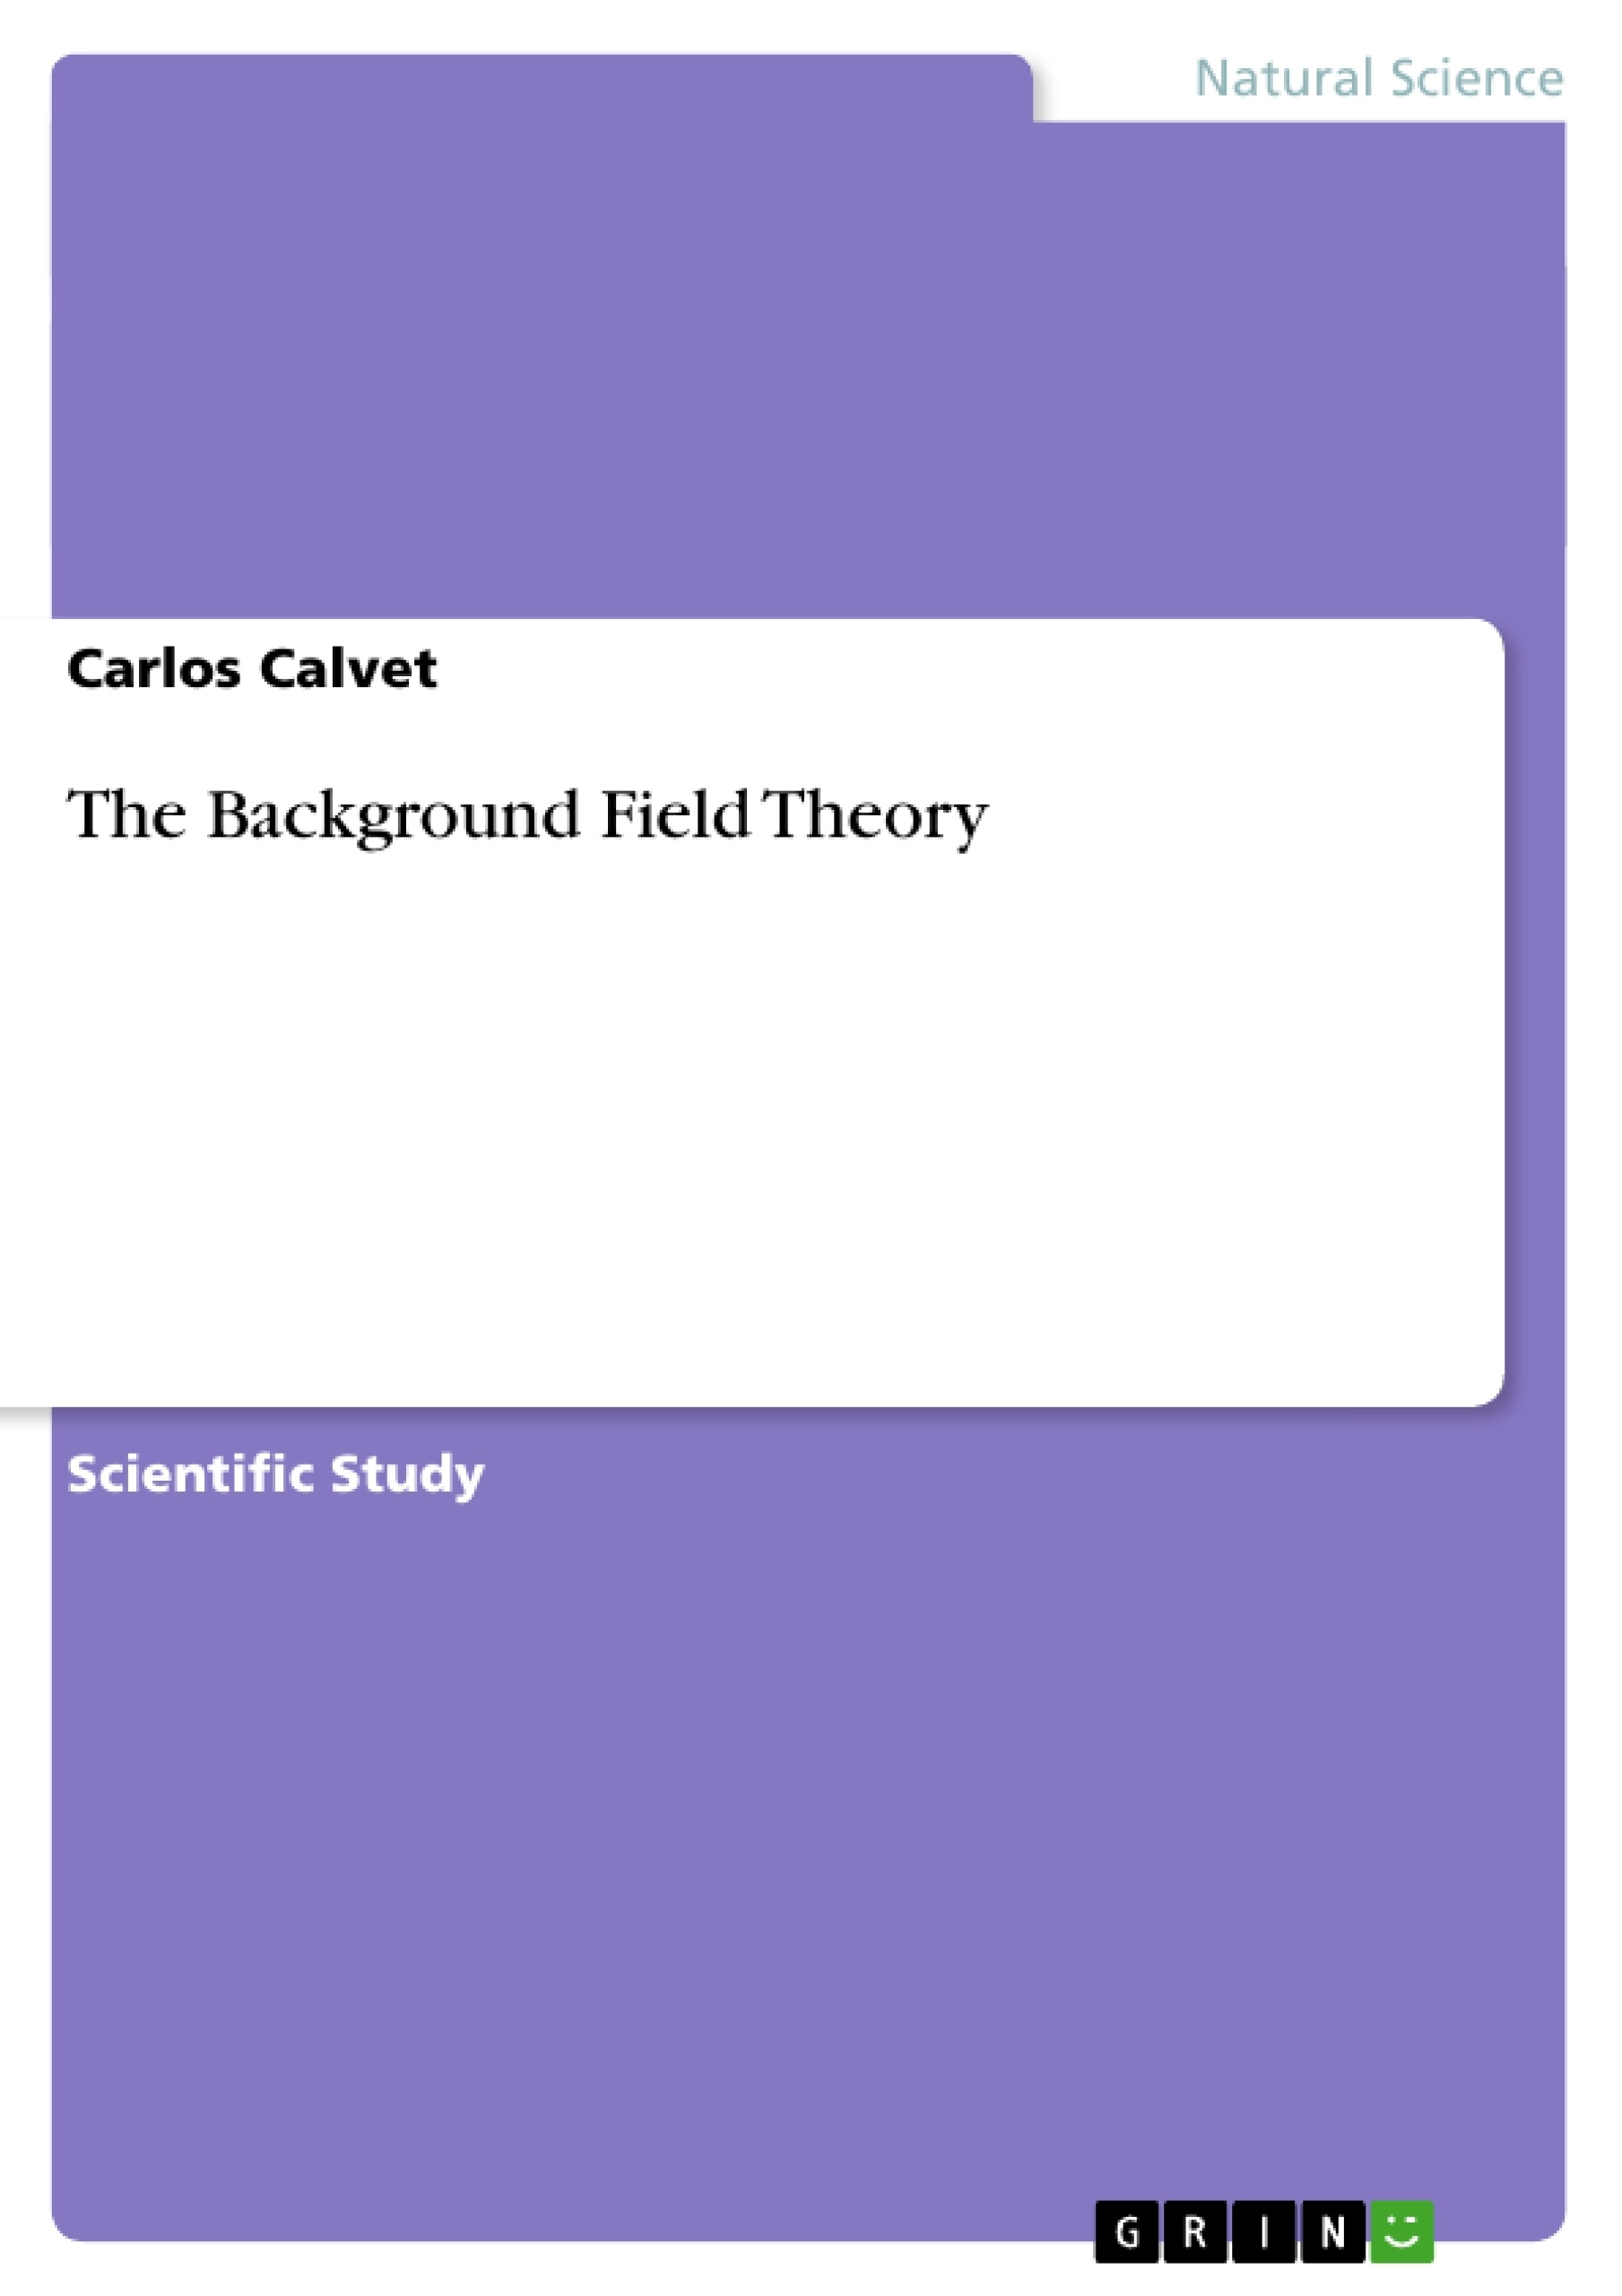 Title: The Background Field Theory